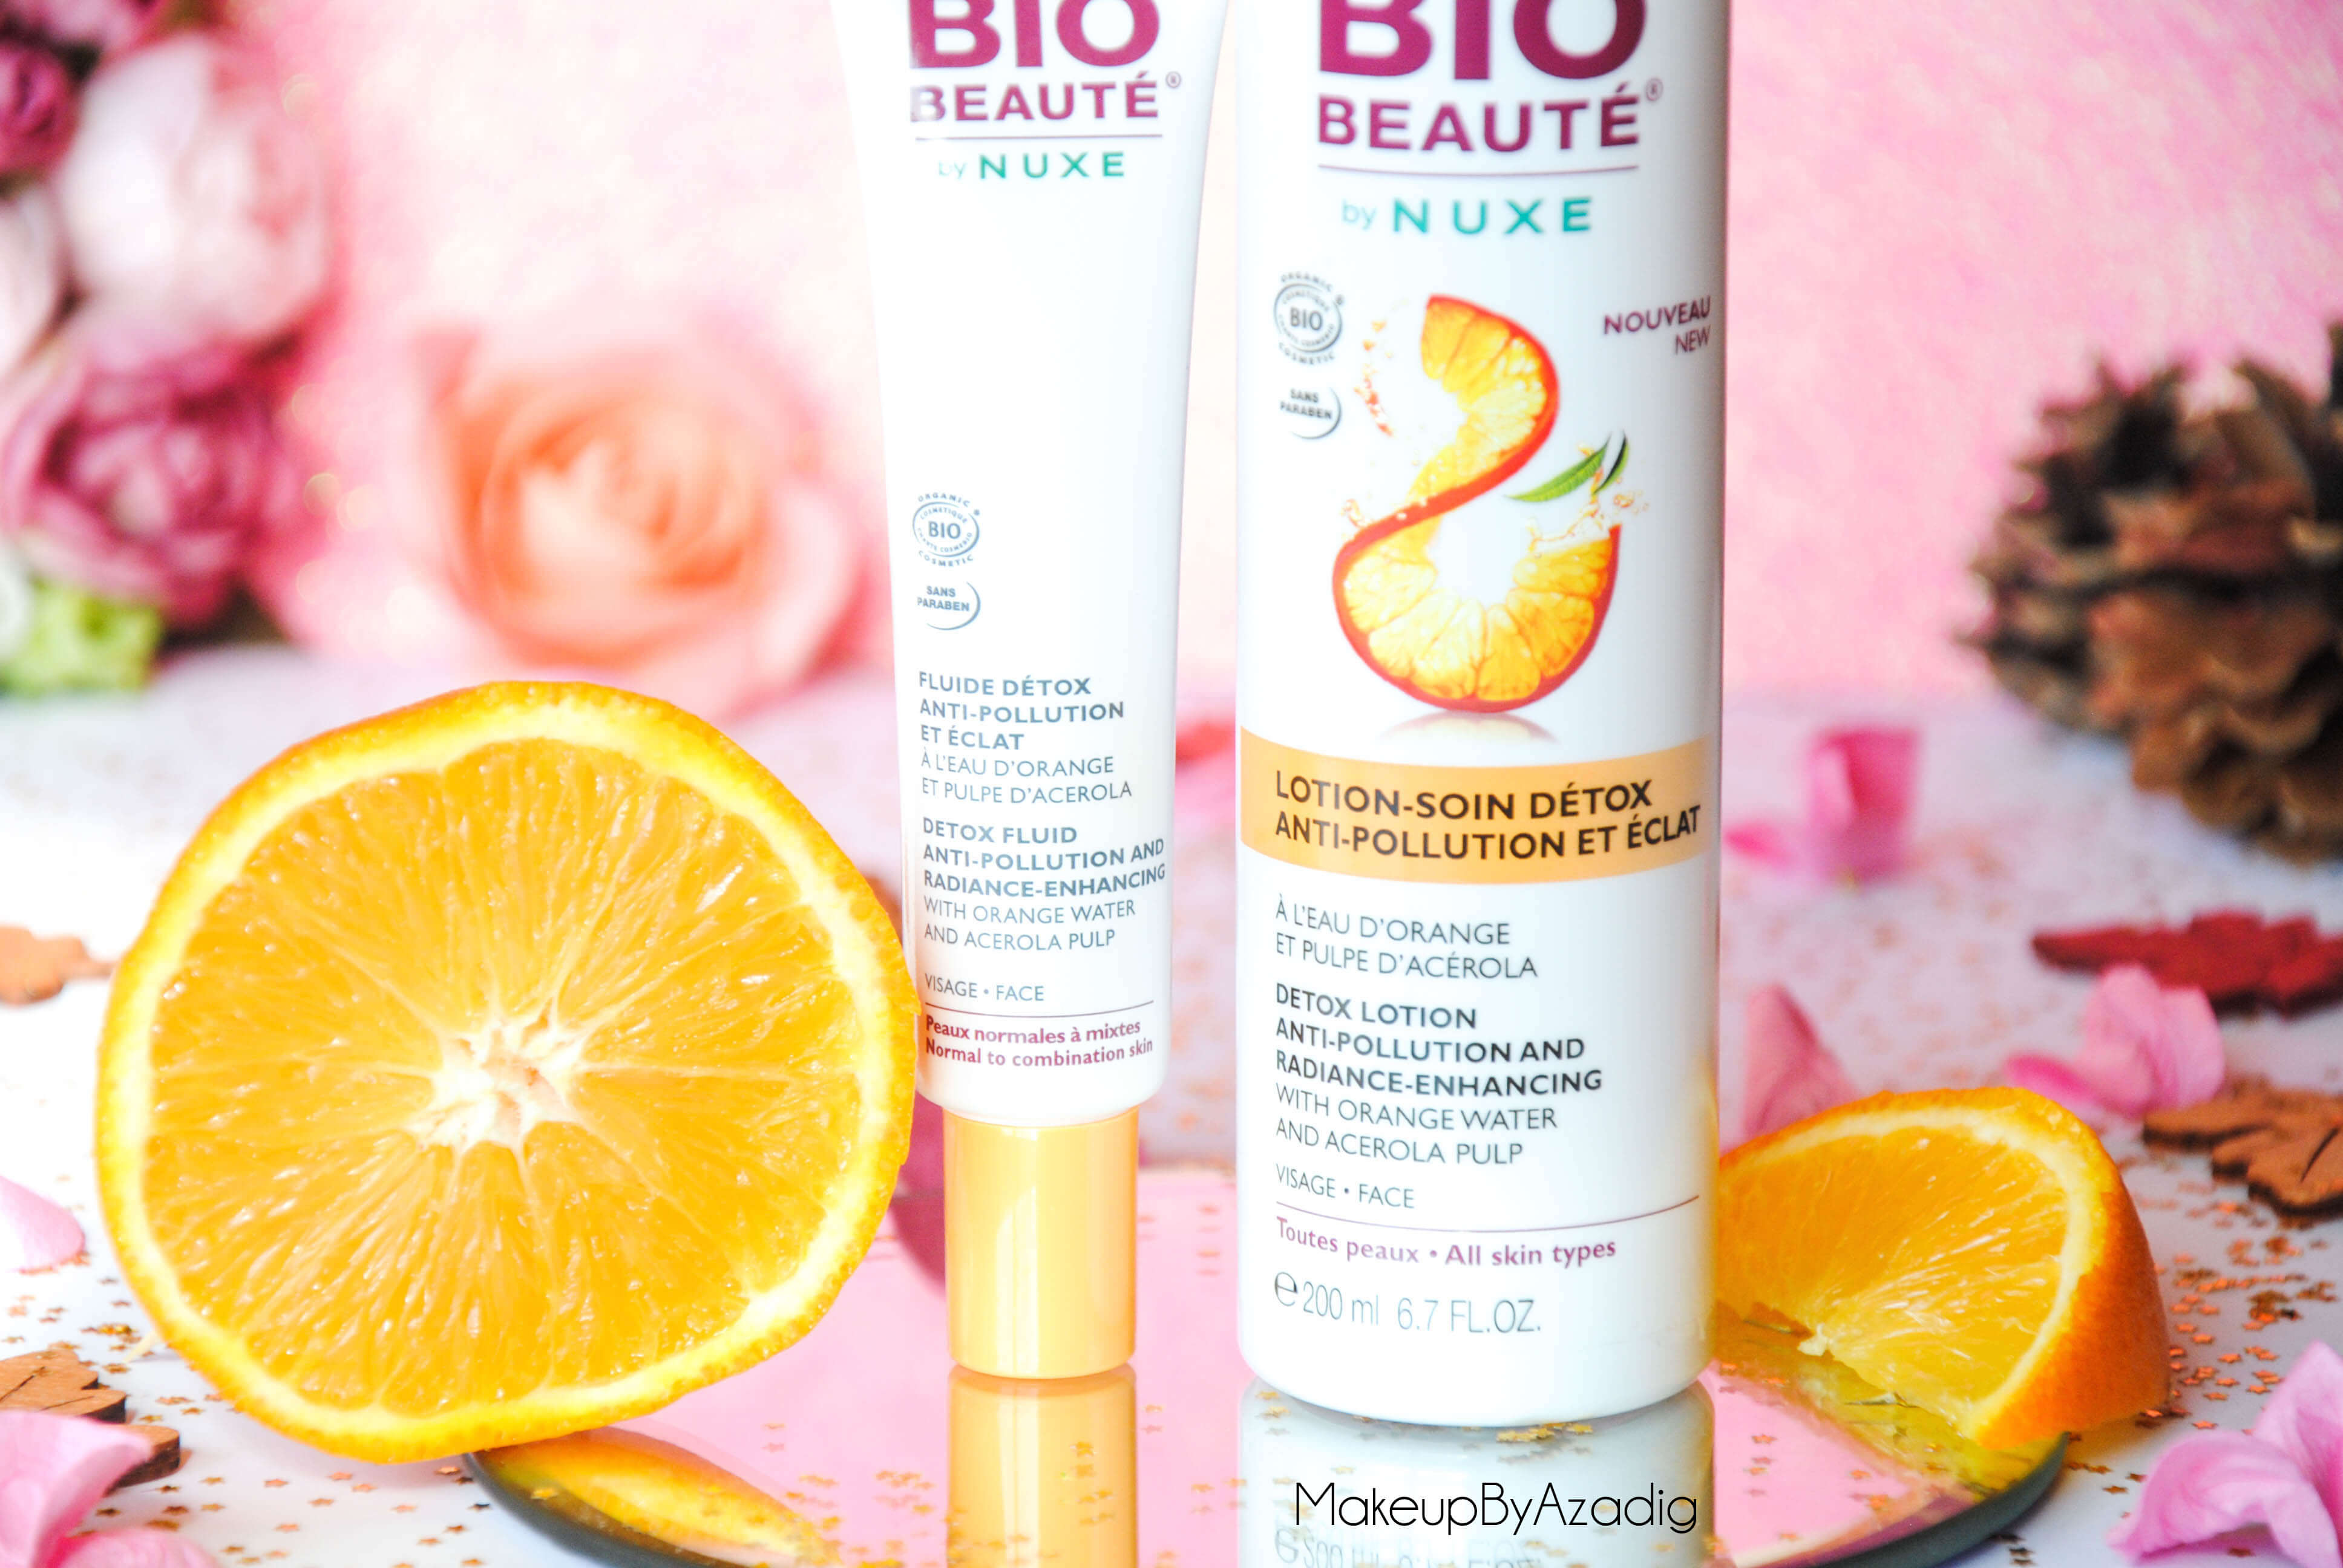 bio-beaute-nuxe-lotion-fluide-creme-contour-des-yeux-masque-orange-acerola-doctipharma-routine-du-matin-detox-soin-troyes-paris-makeupbyazadig-blog-revue-review-anti-pollution-peau-douce